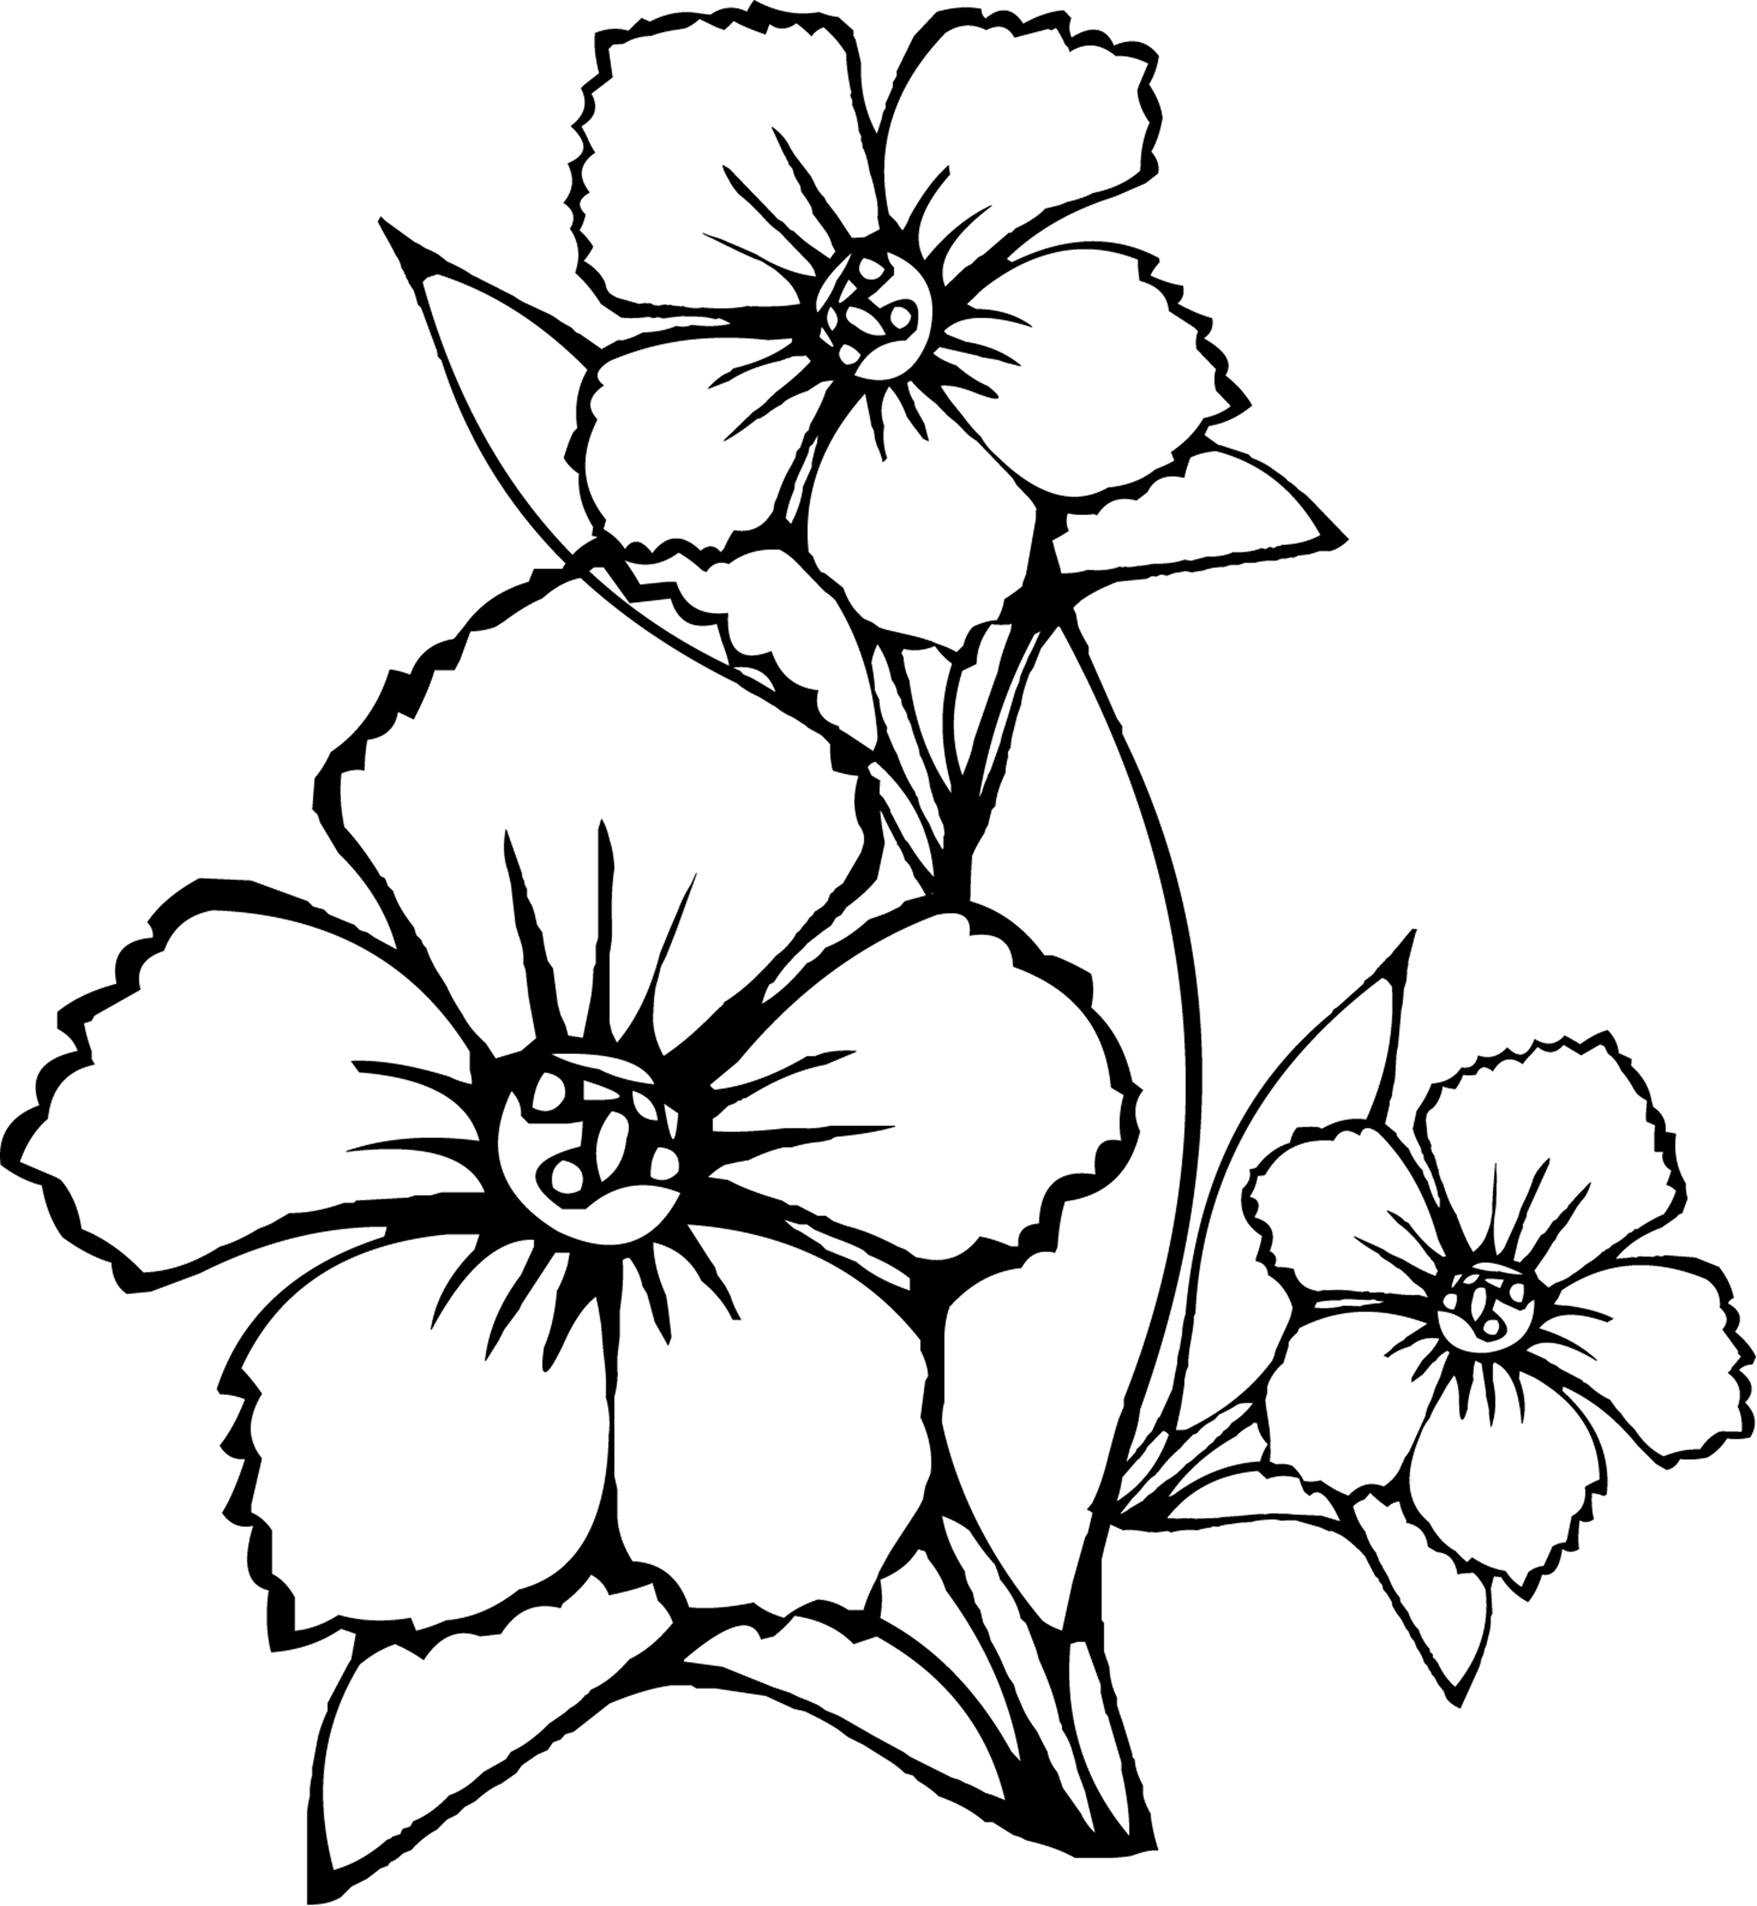 orchid coloring pages free easy to print flower coloring pages tulamama coloring pages orchid 1 1